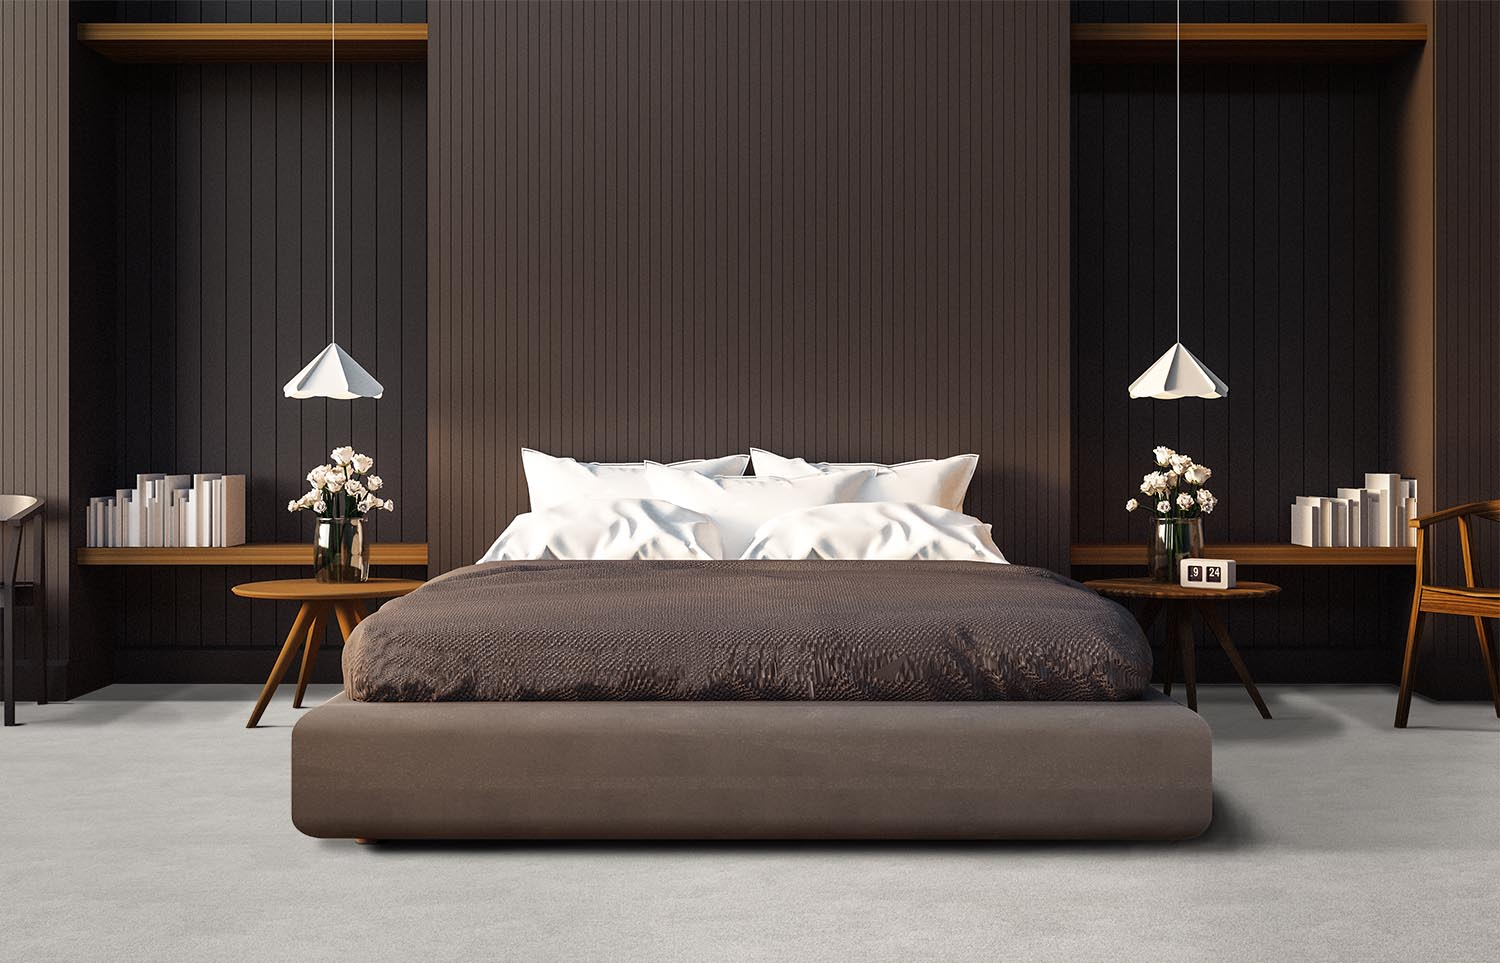 Softology - S201 - Willow contemporary bedroom